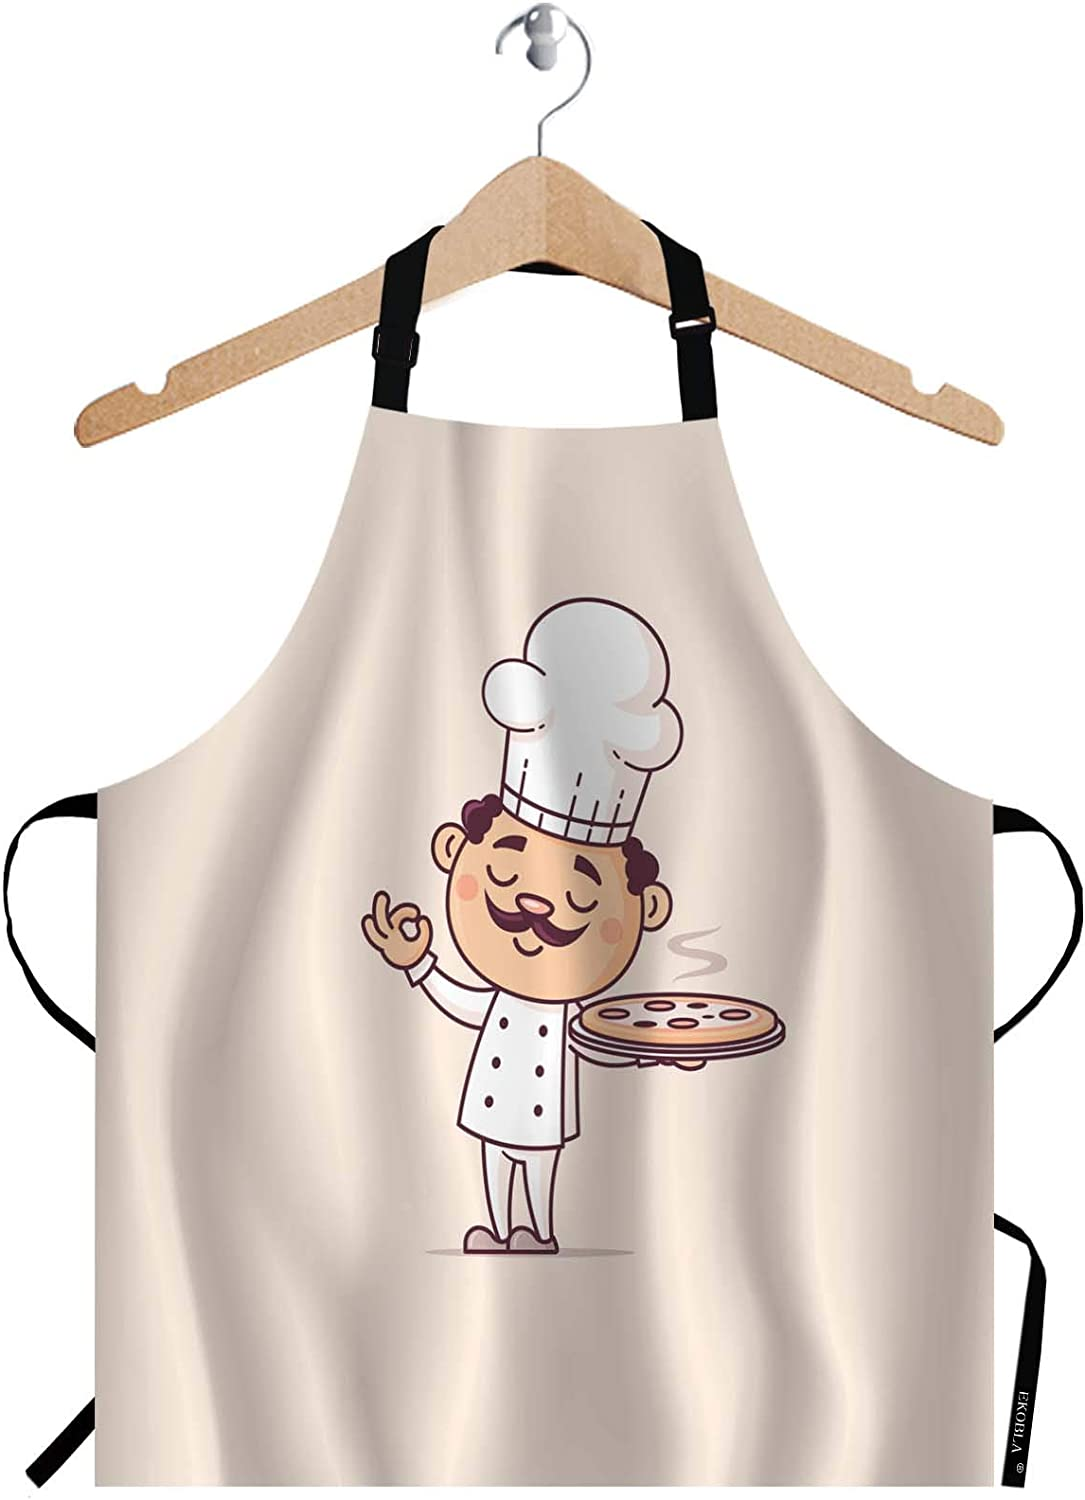 EKOBLA Chef Aprons Hot Pizza Cook Cuisine Cute Fast Food Hat Italian Man Moustache Waterproof Resistant Chef Cooking Kitchen BBQ Adjustable Aprons for Women Men 27x31 Inch